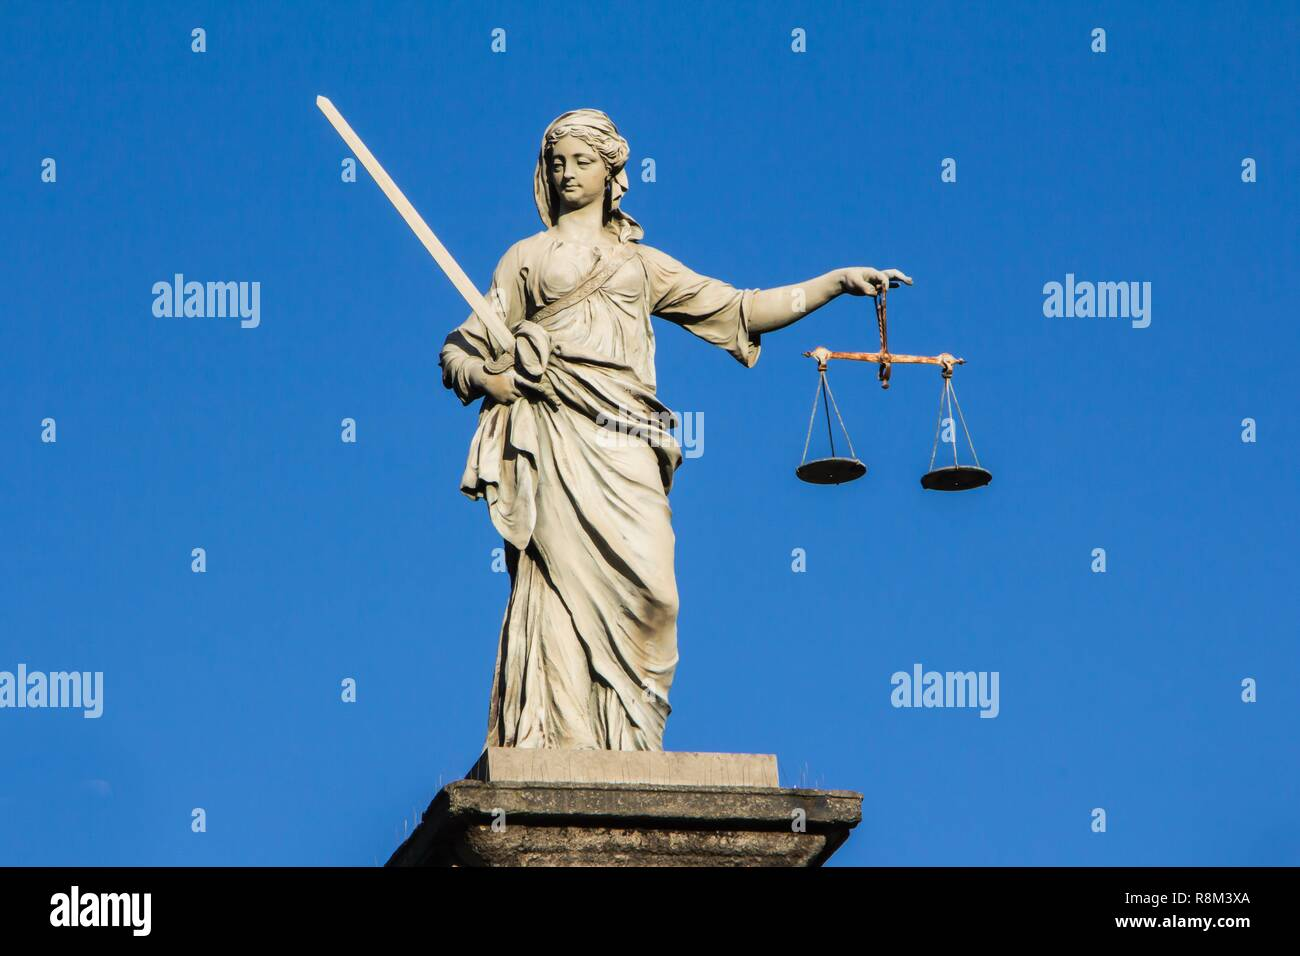 Statue of Lady Justice at Dublin Castle in Dublin, Ireland Stock Photo